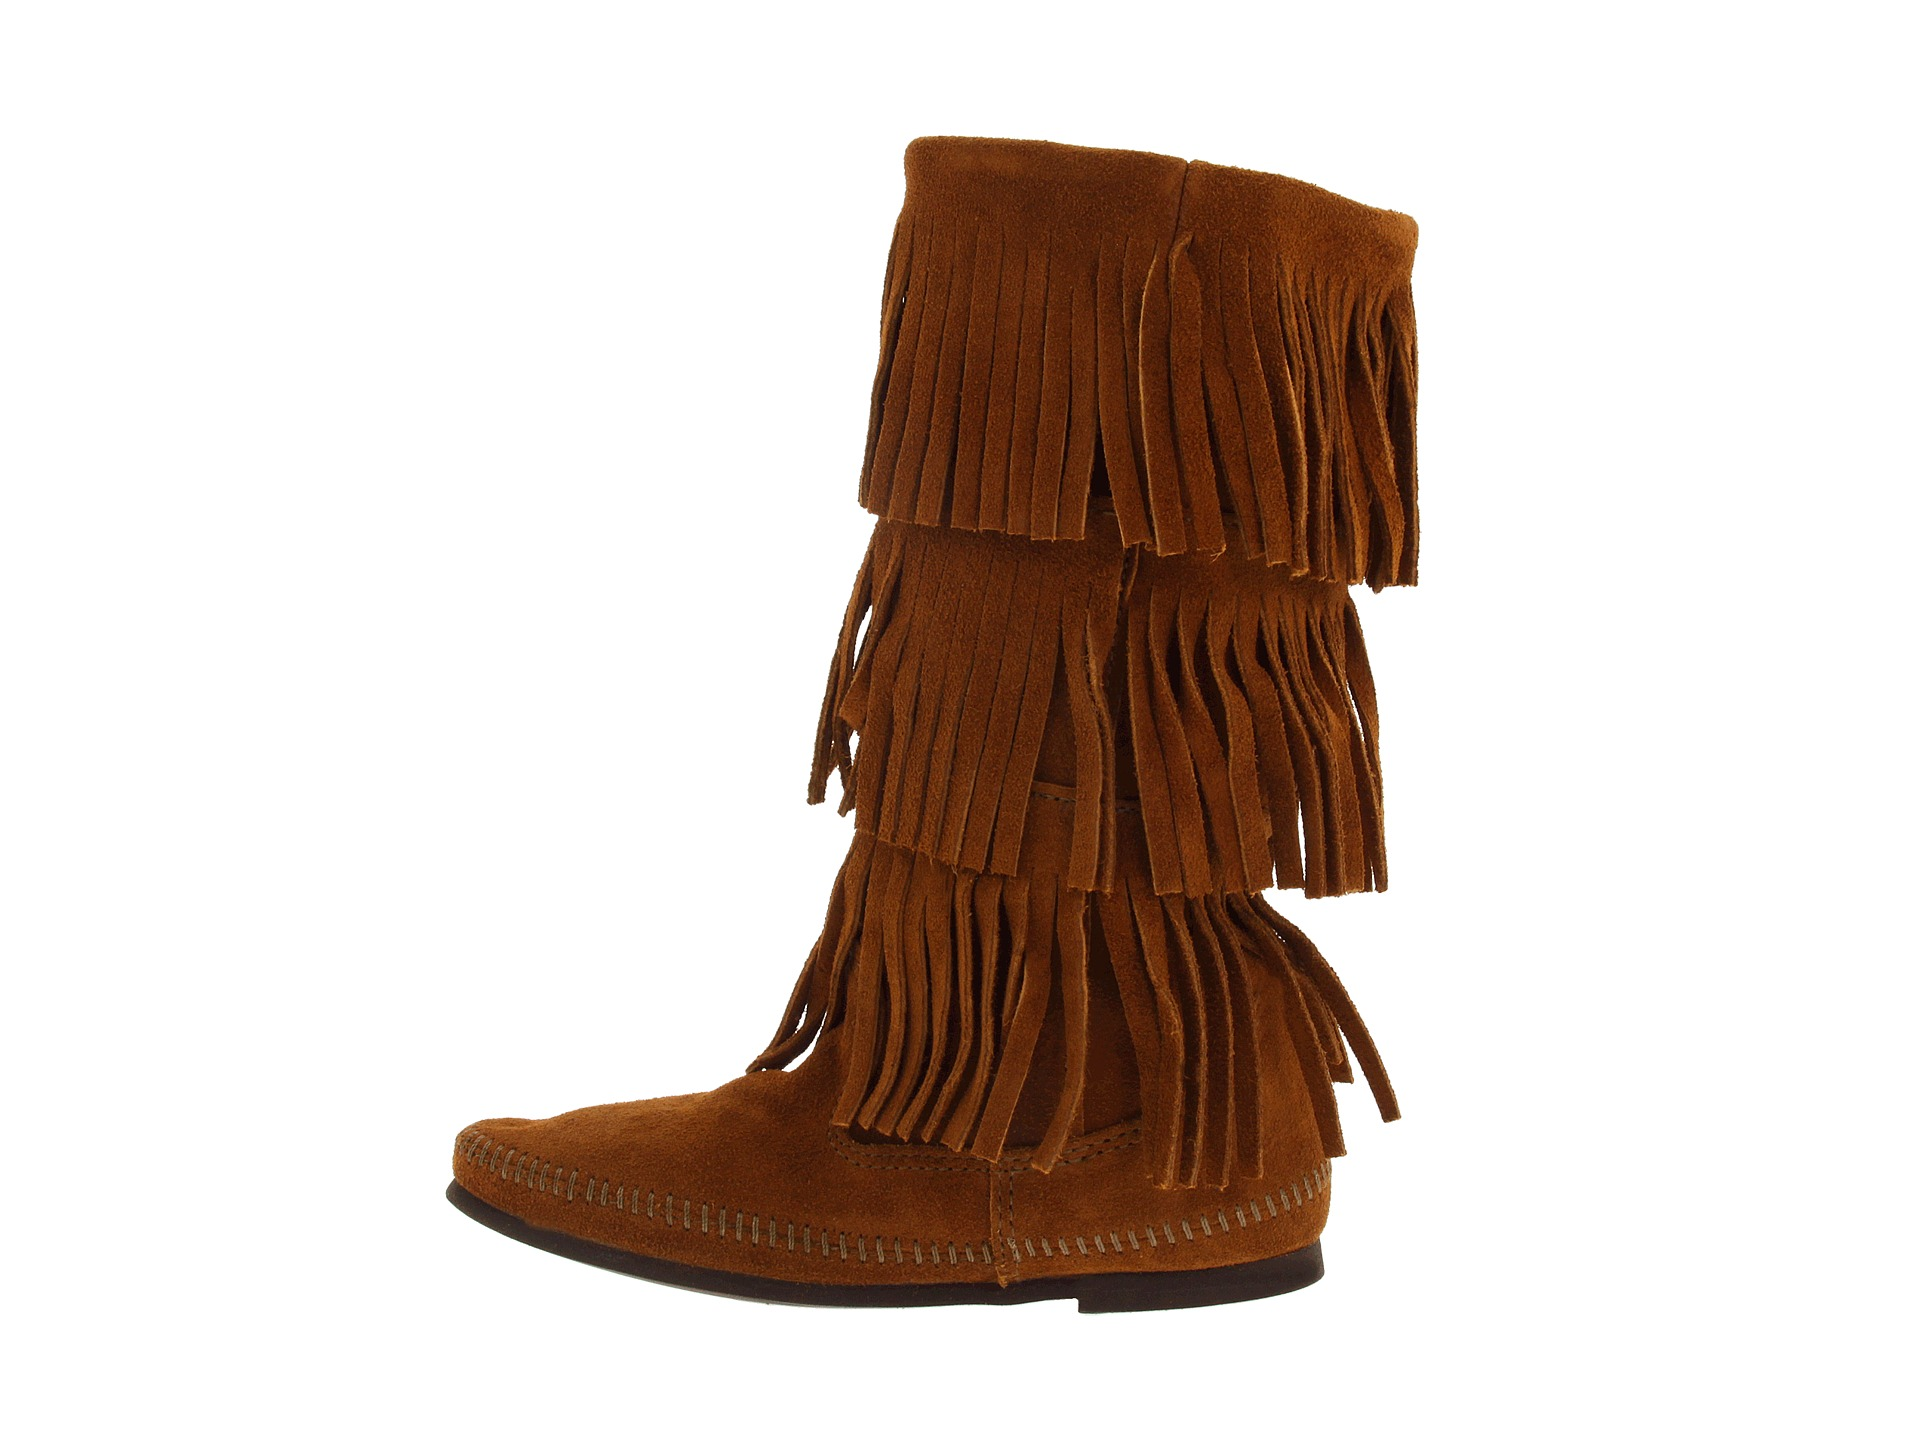 Make fringe for your boots! — Crafthubs